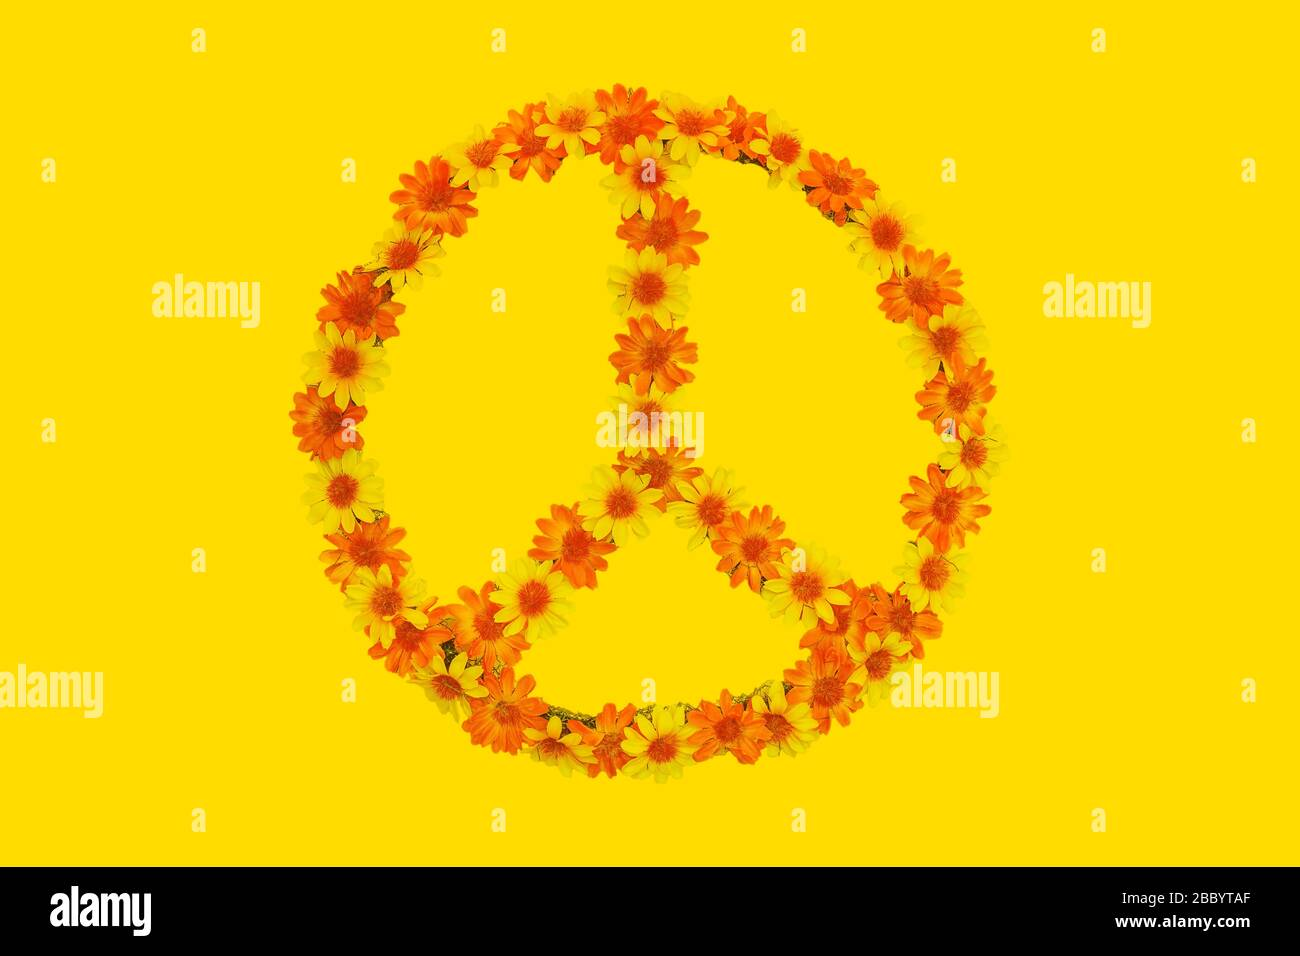 Flower Power Peace Sign Made Out Of Flowers On A Yellow Background Stock Photo Alamy